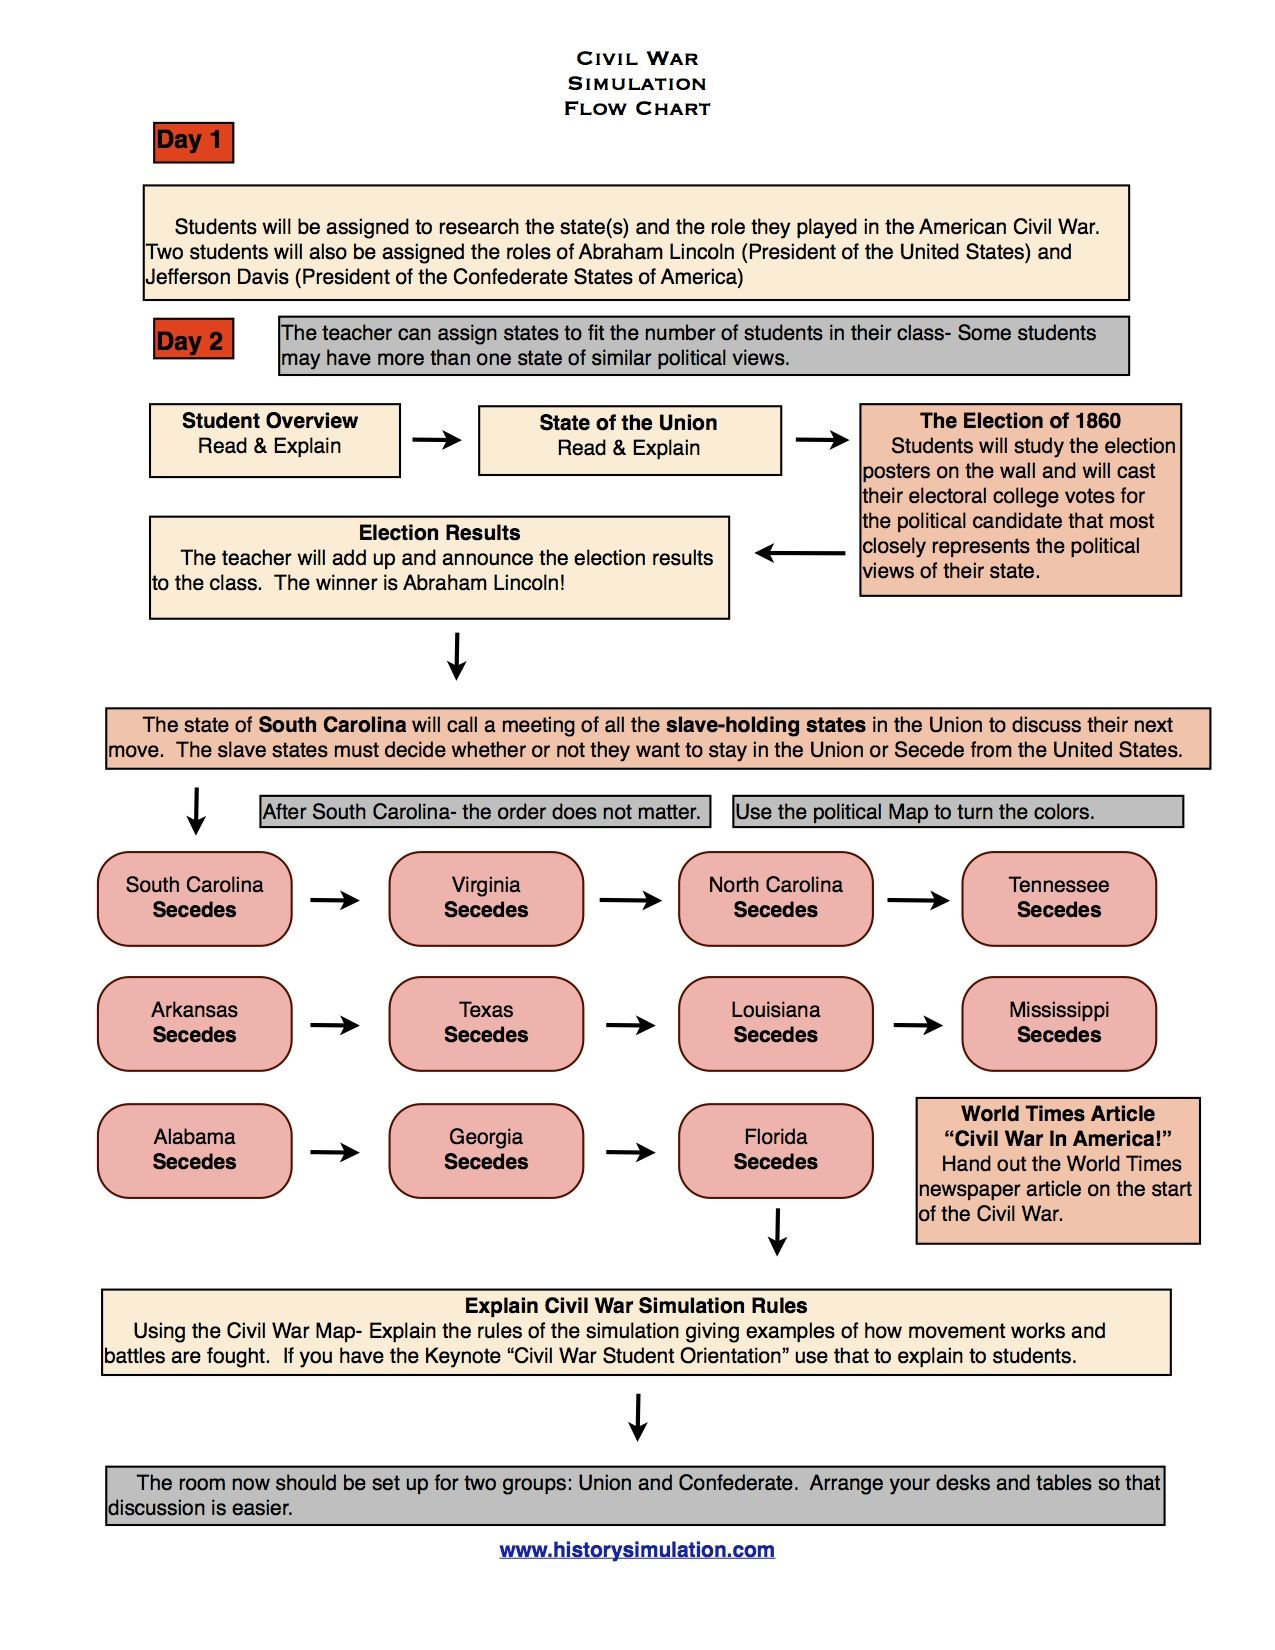 in the civil war simulation the confederate states want a flow chart 1 for historysimulation com s civil war simulation see how this lesson